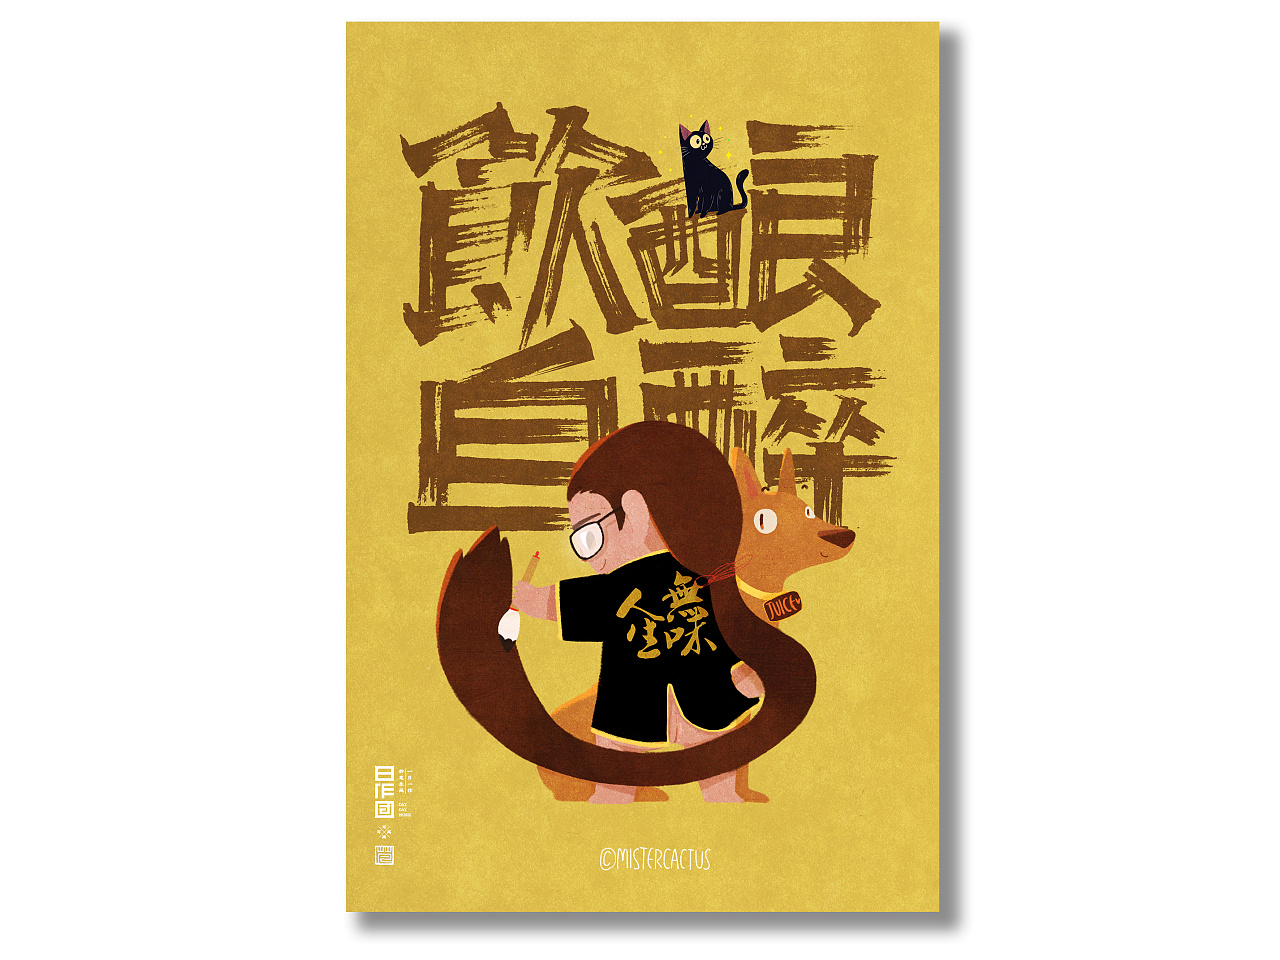 11P Creative Chinese Character Poster for Children